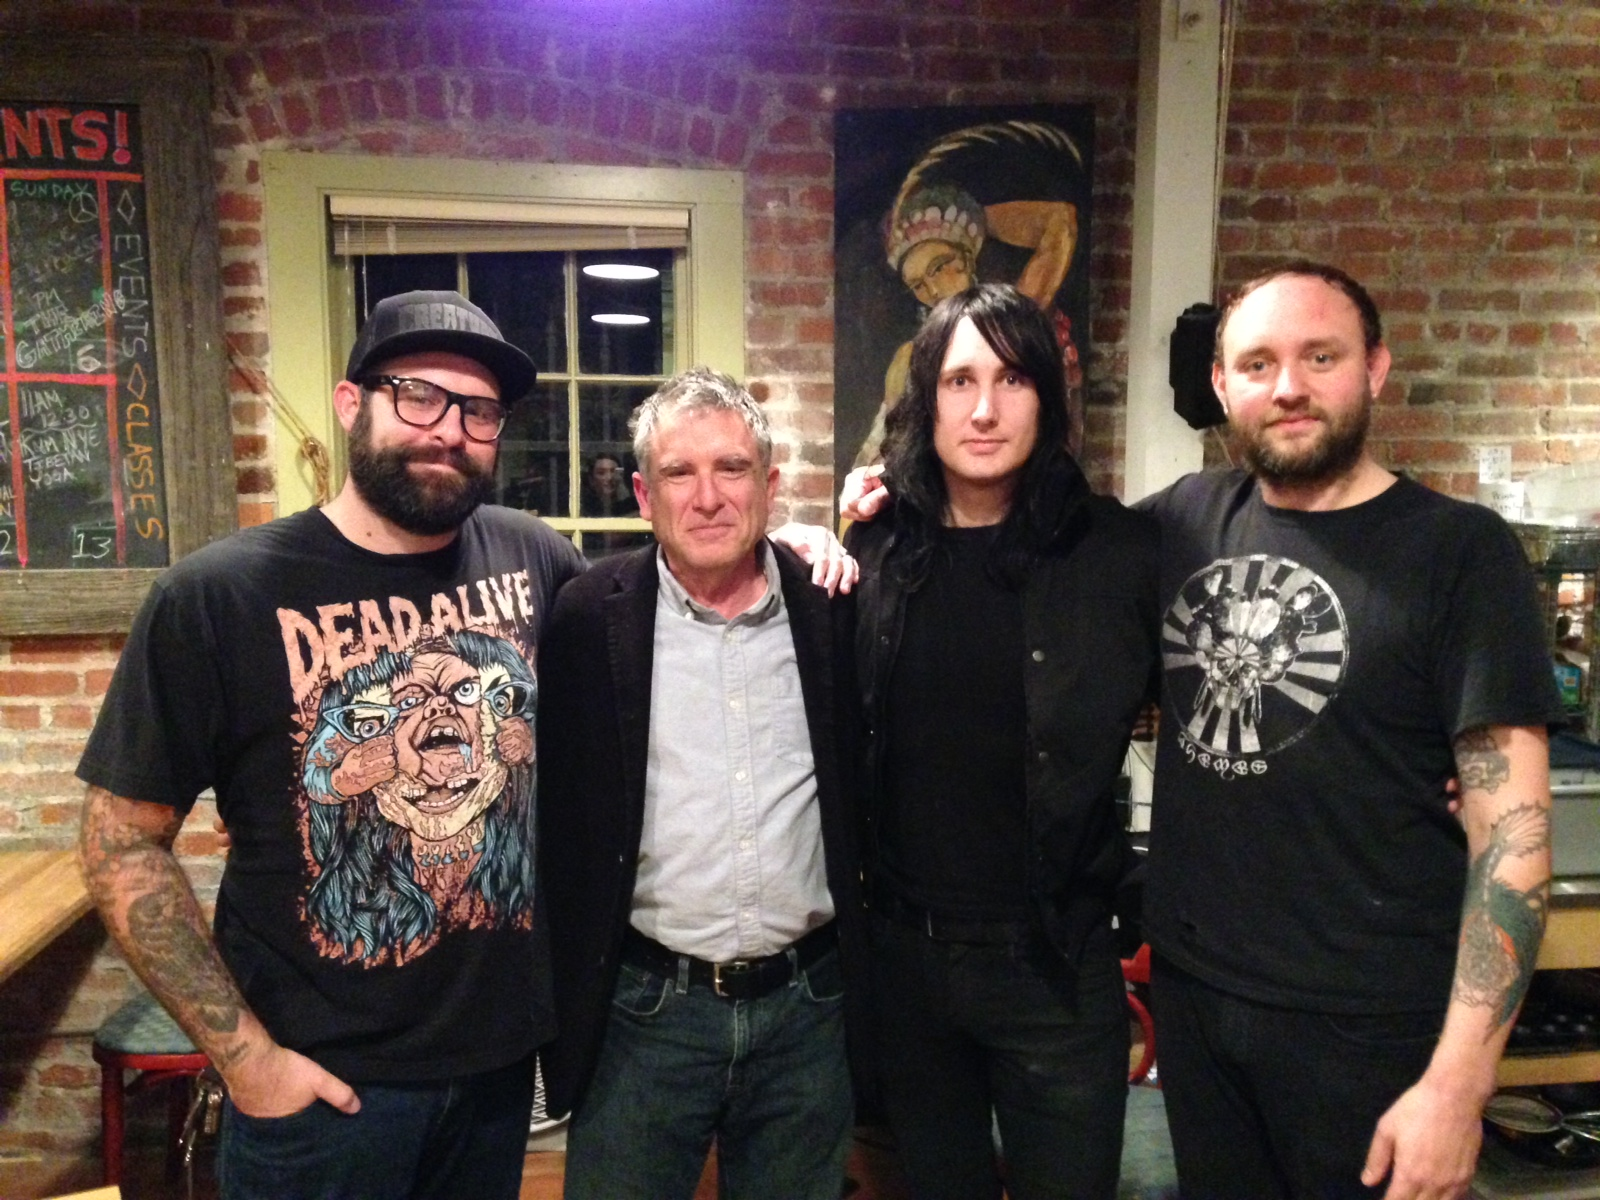 Truly and Honor to meet Michael Grais! from left to right: Brian, Michael Grais, Jef and Josh.